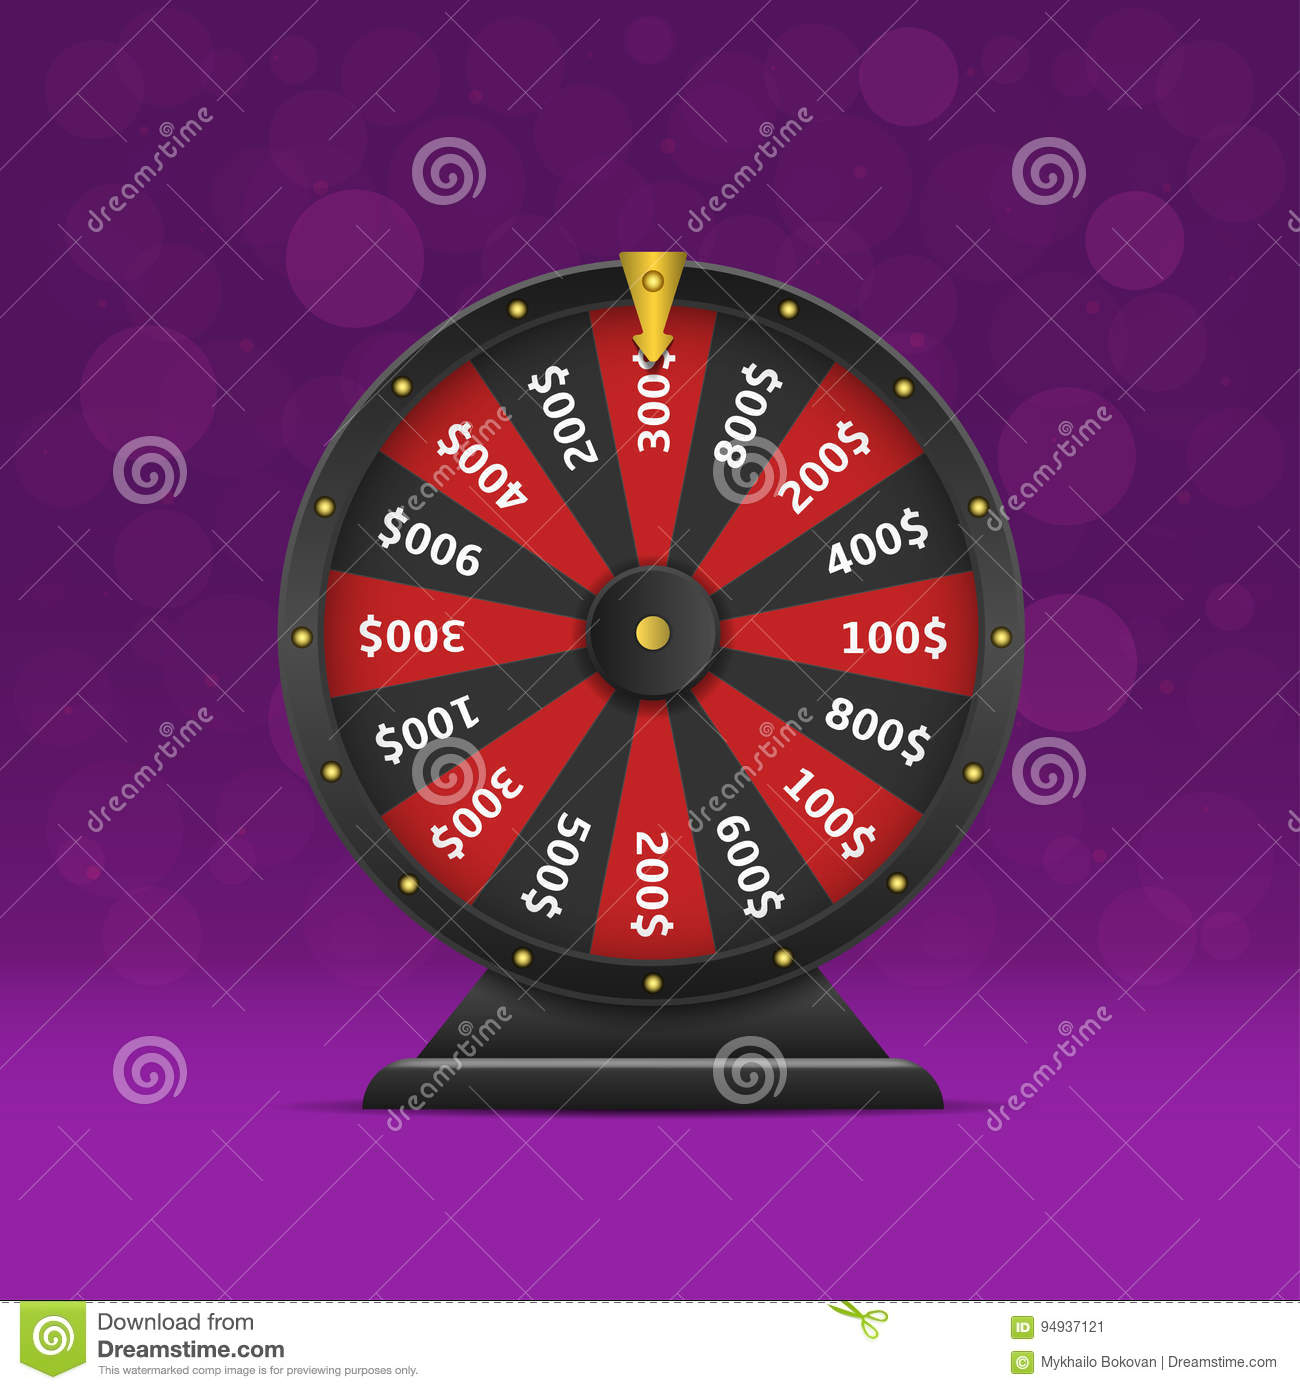 online wheel of fortune template - online cartoons illustrations vector stock images